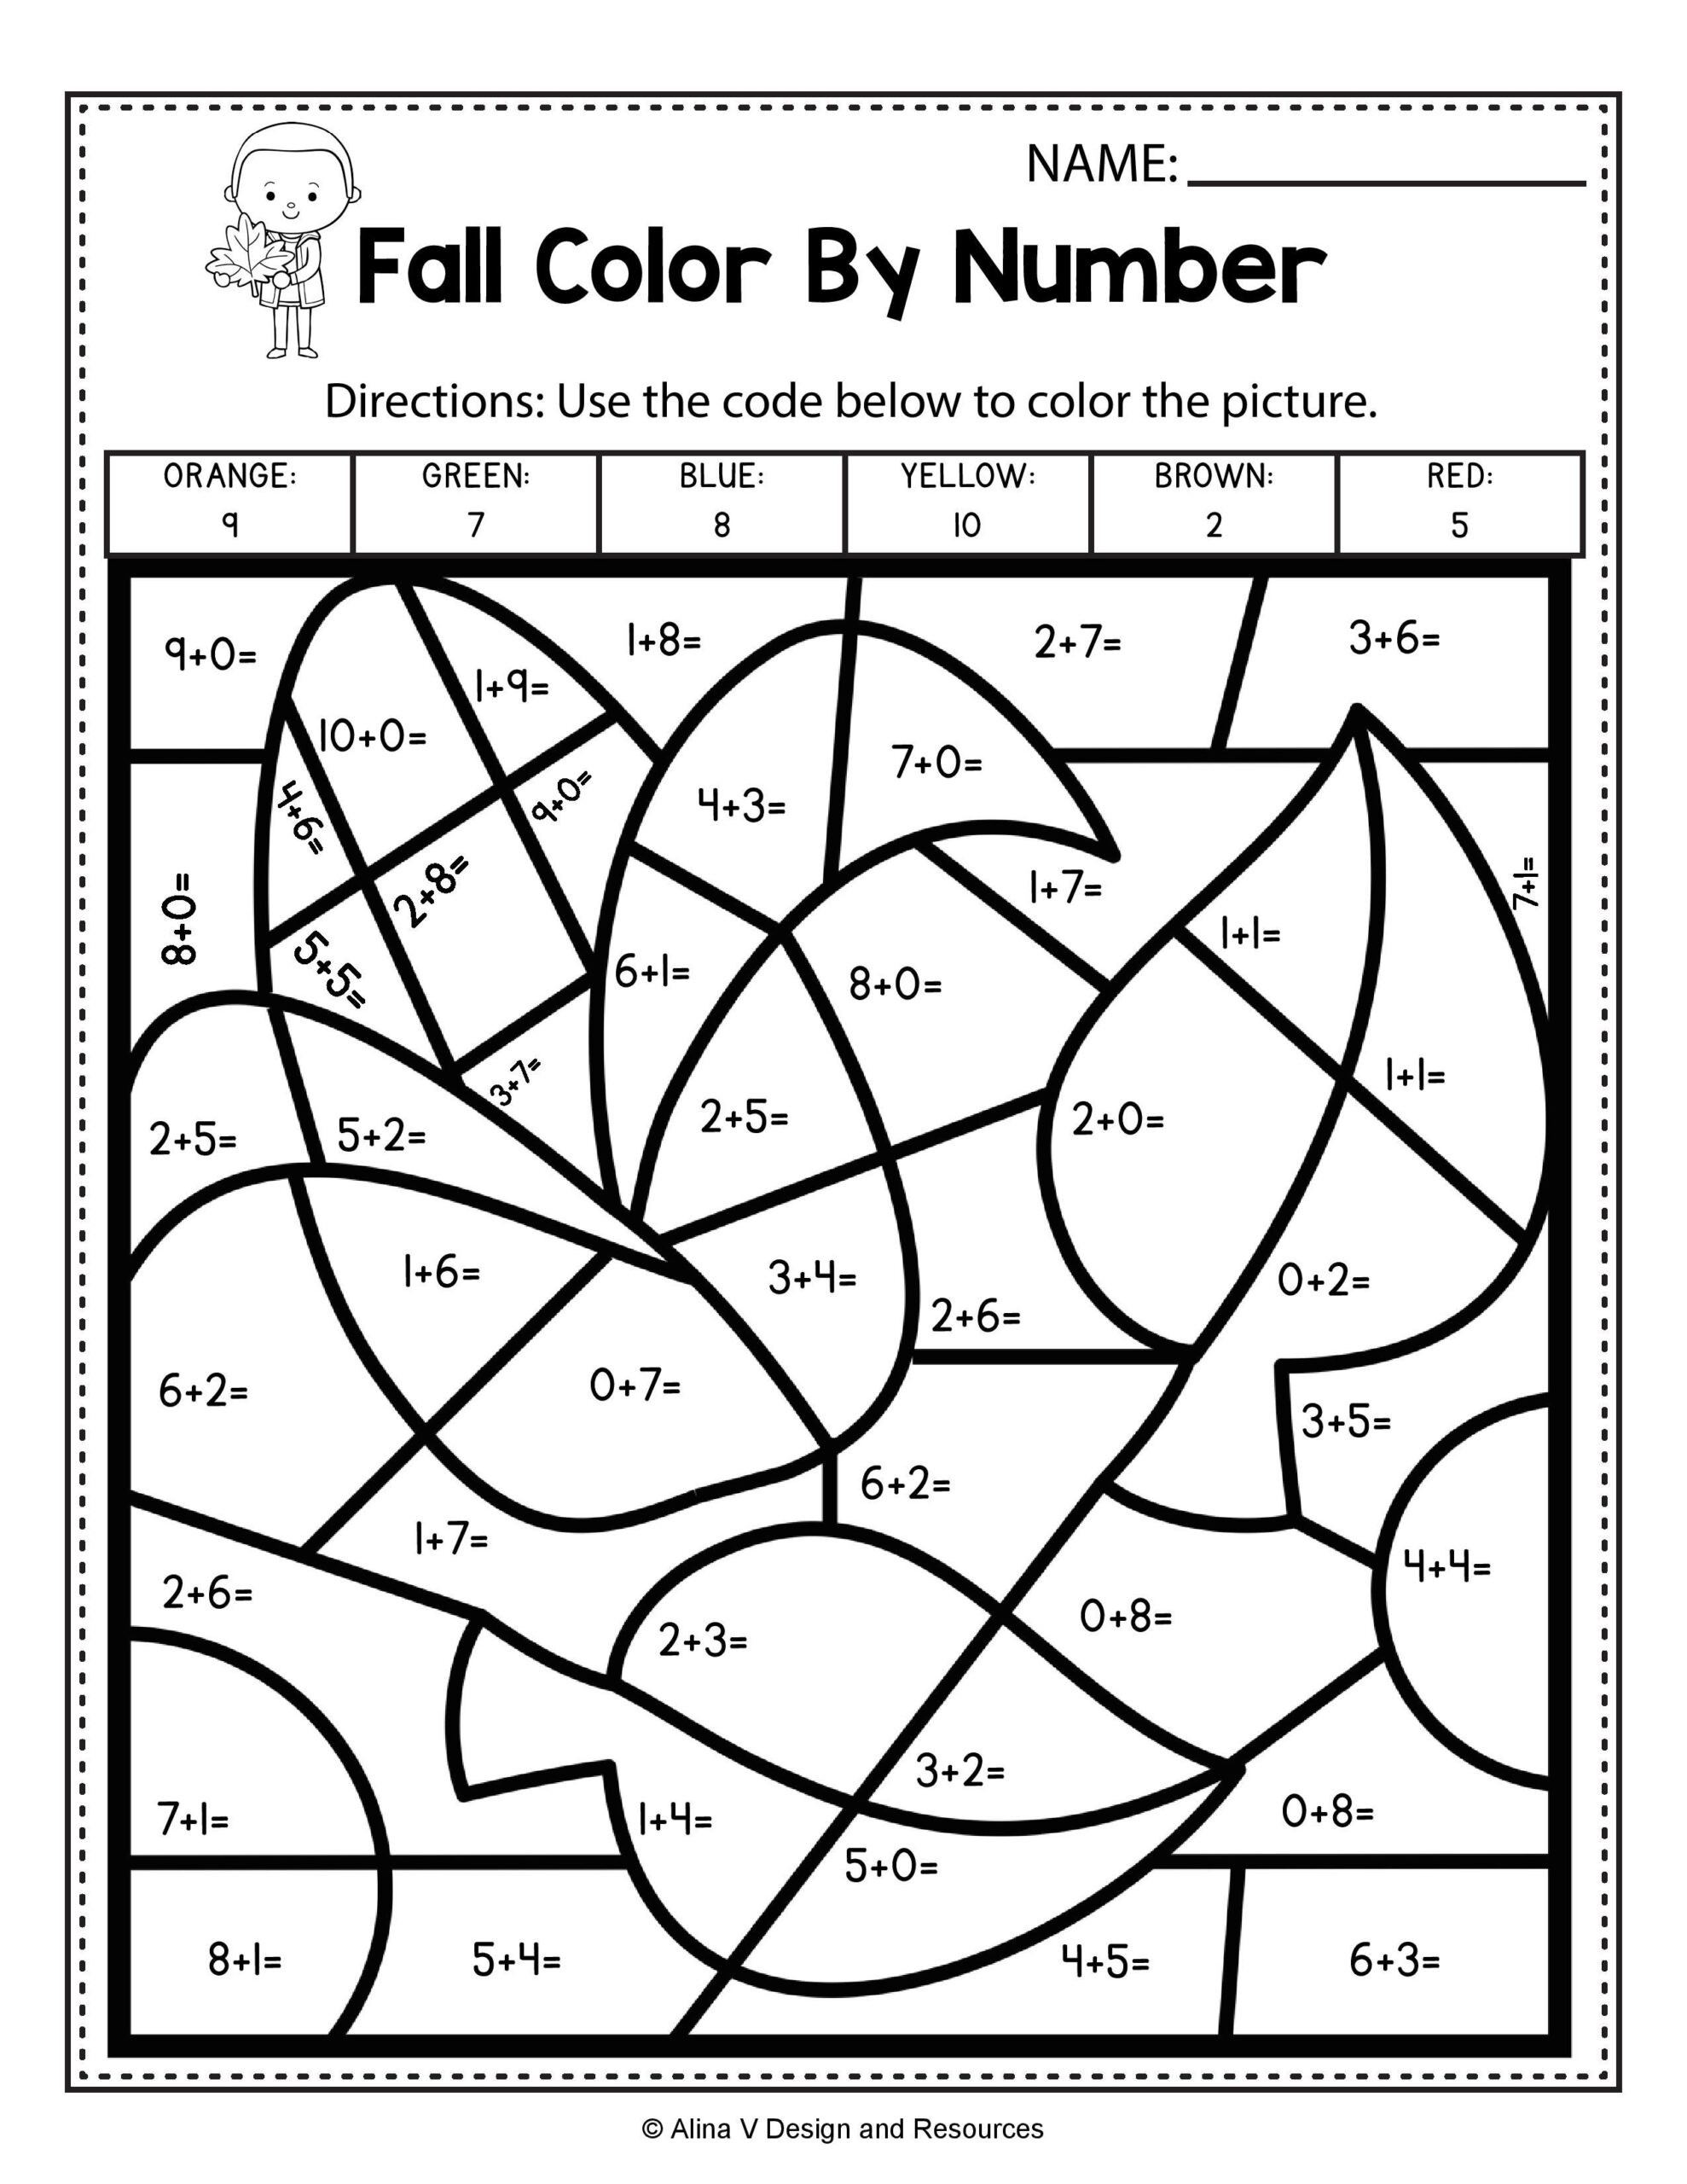 Number Patterns Worksheets 3rd Grade Fun Sheets for 1st Grade Number Patterns Worksheets 3rd